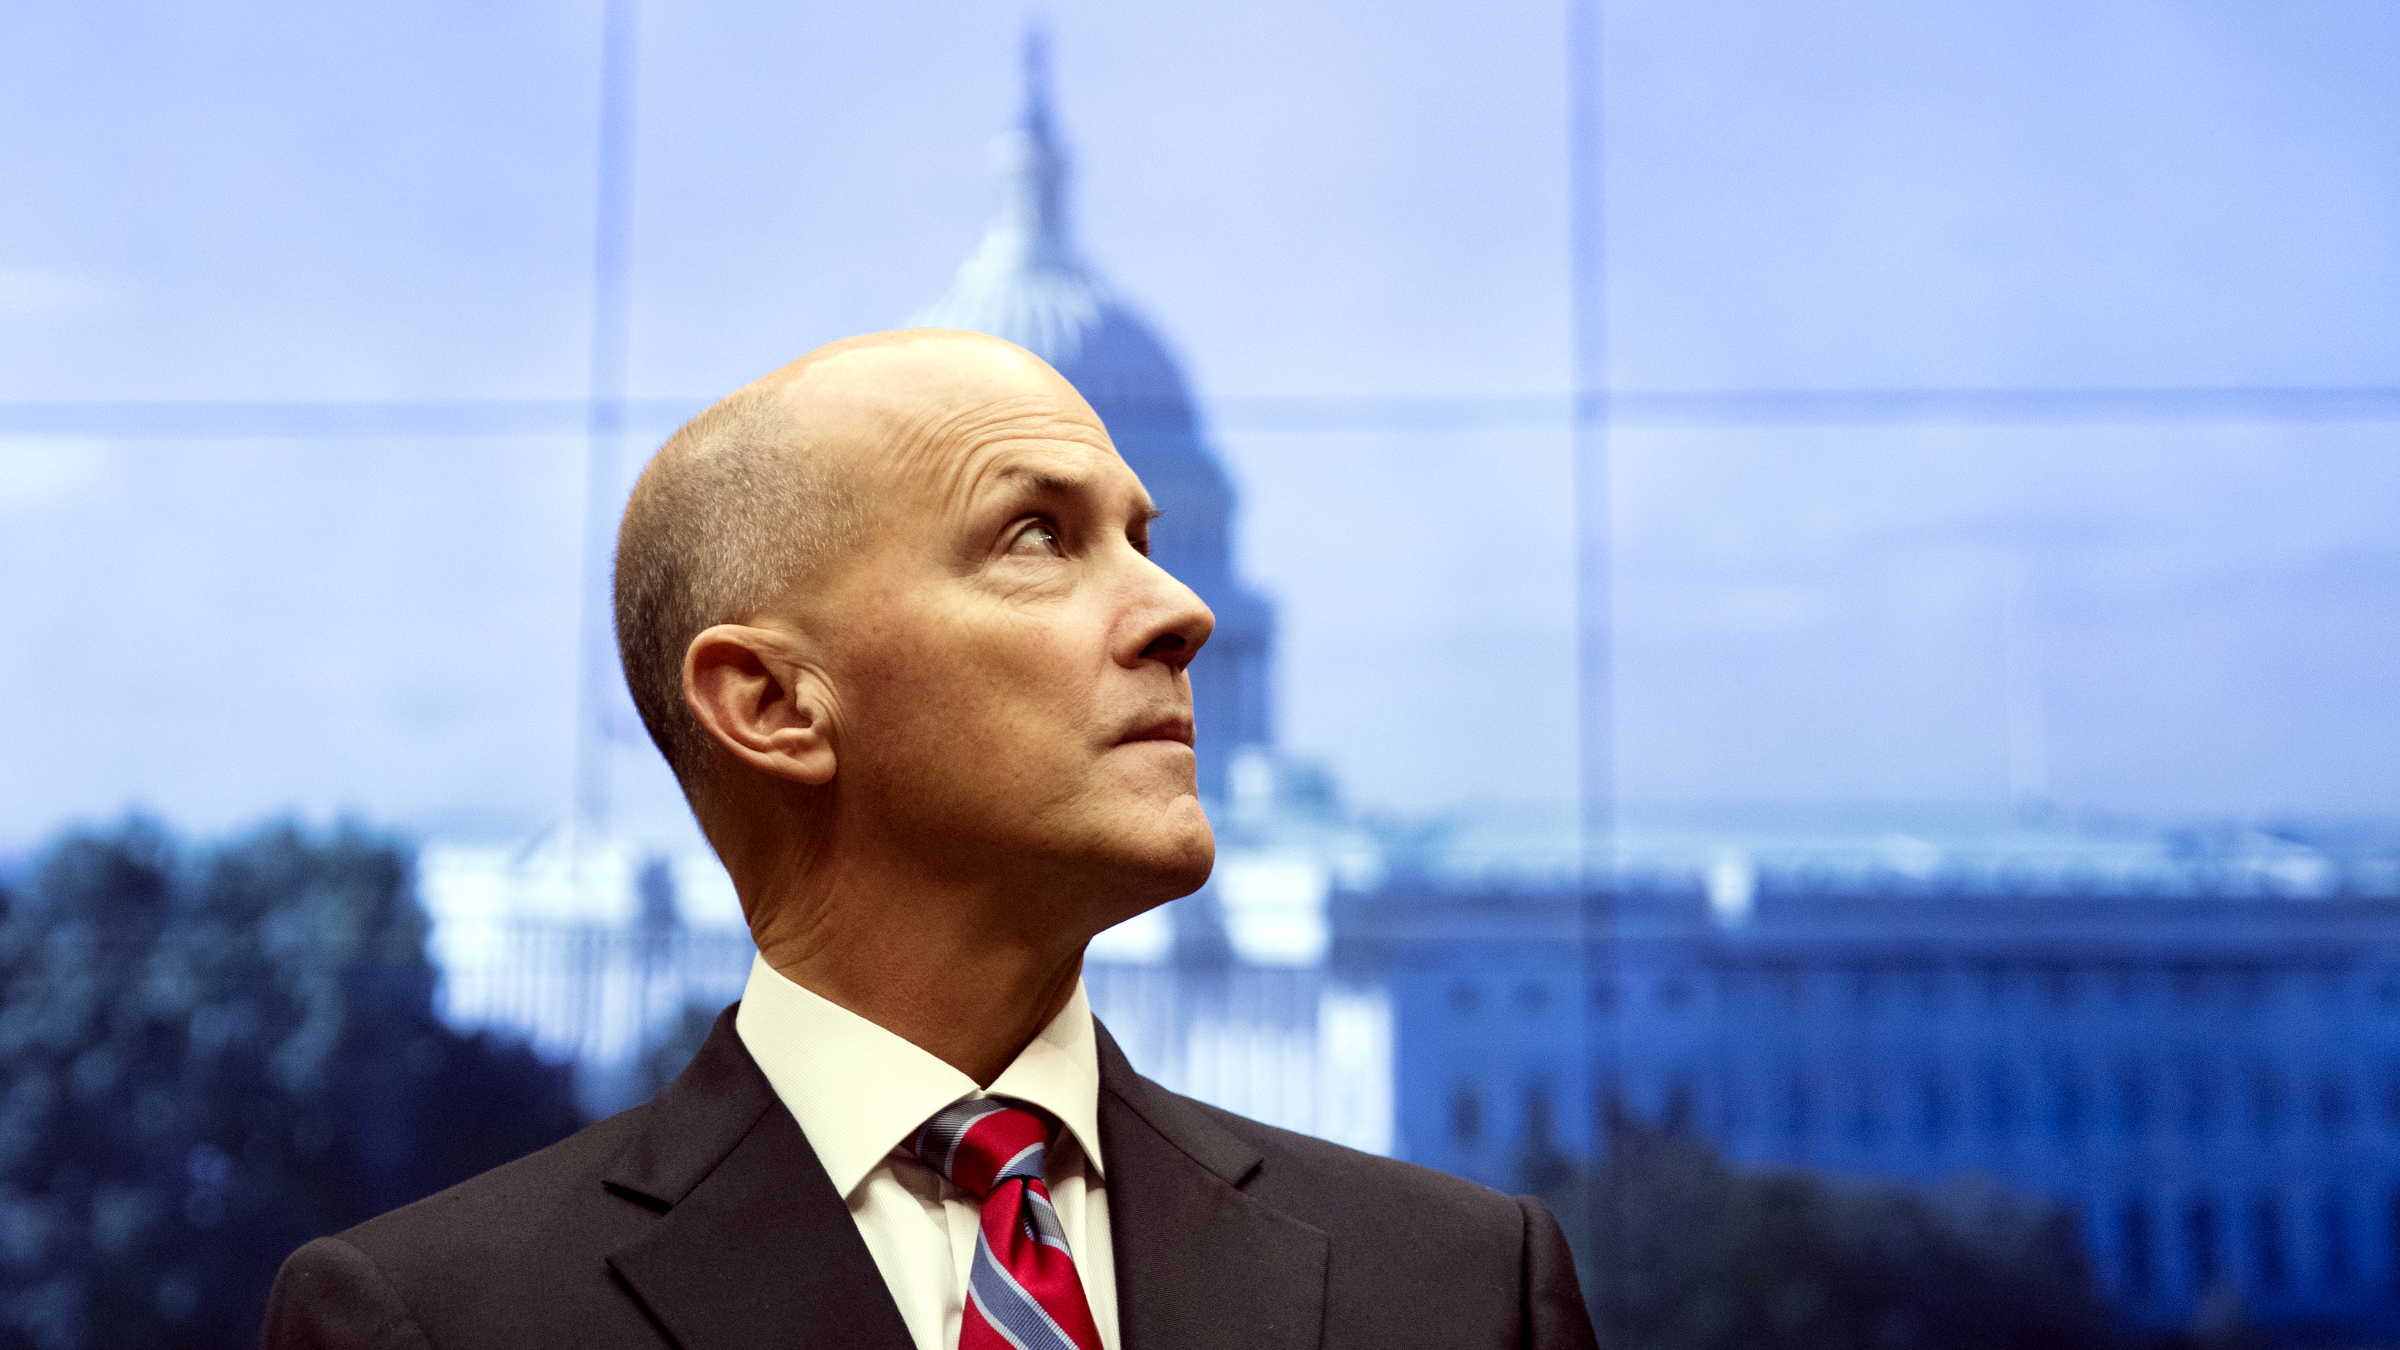 Former chairman and CEO of Equifax Richard F. Smith, pauses as he arrives to testify before the Digital Commerce and Consumer Protection Subcommittee of the House Commerce Committee on Capitol Hill in Washington, Tuesday, Oct. 3, 2017.